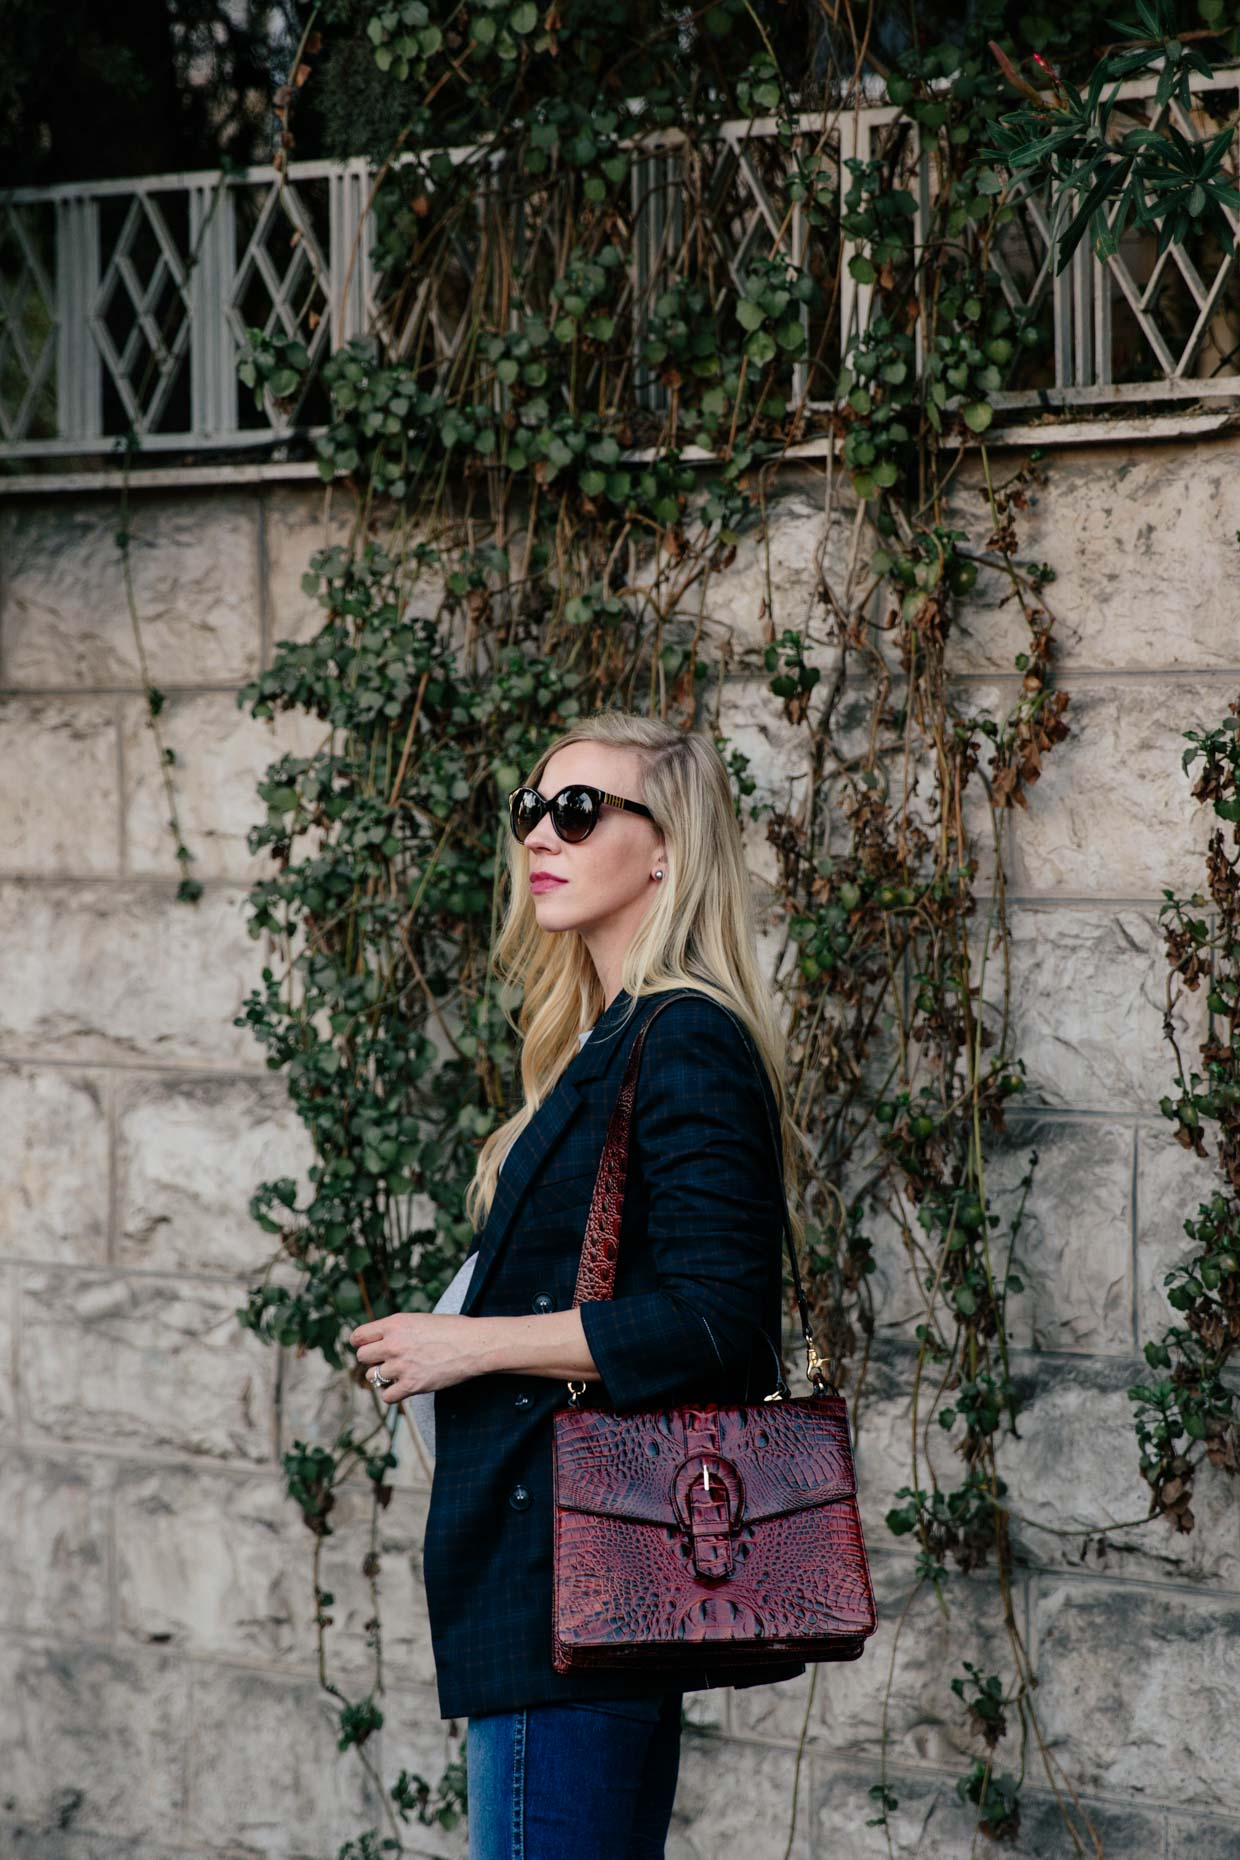 Meagan-Brandon-fashion-blogger-of-Meagans-Moda-chic-maternity-outfit-with-navy-plaid-blazer-and-Brahmin-Gabriella-Pecan-satchel.jpg